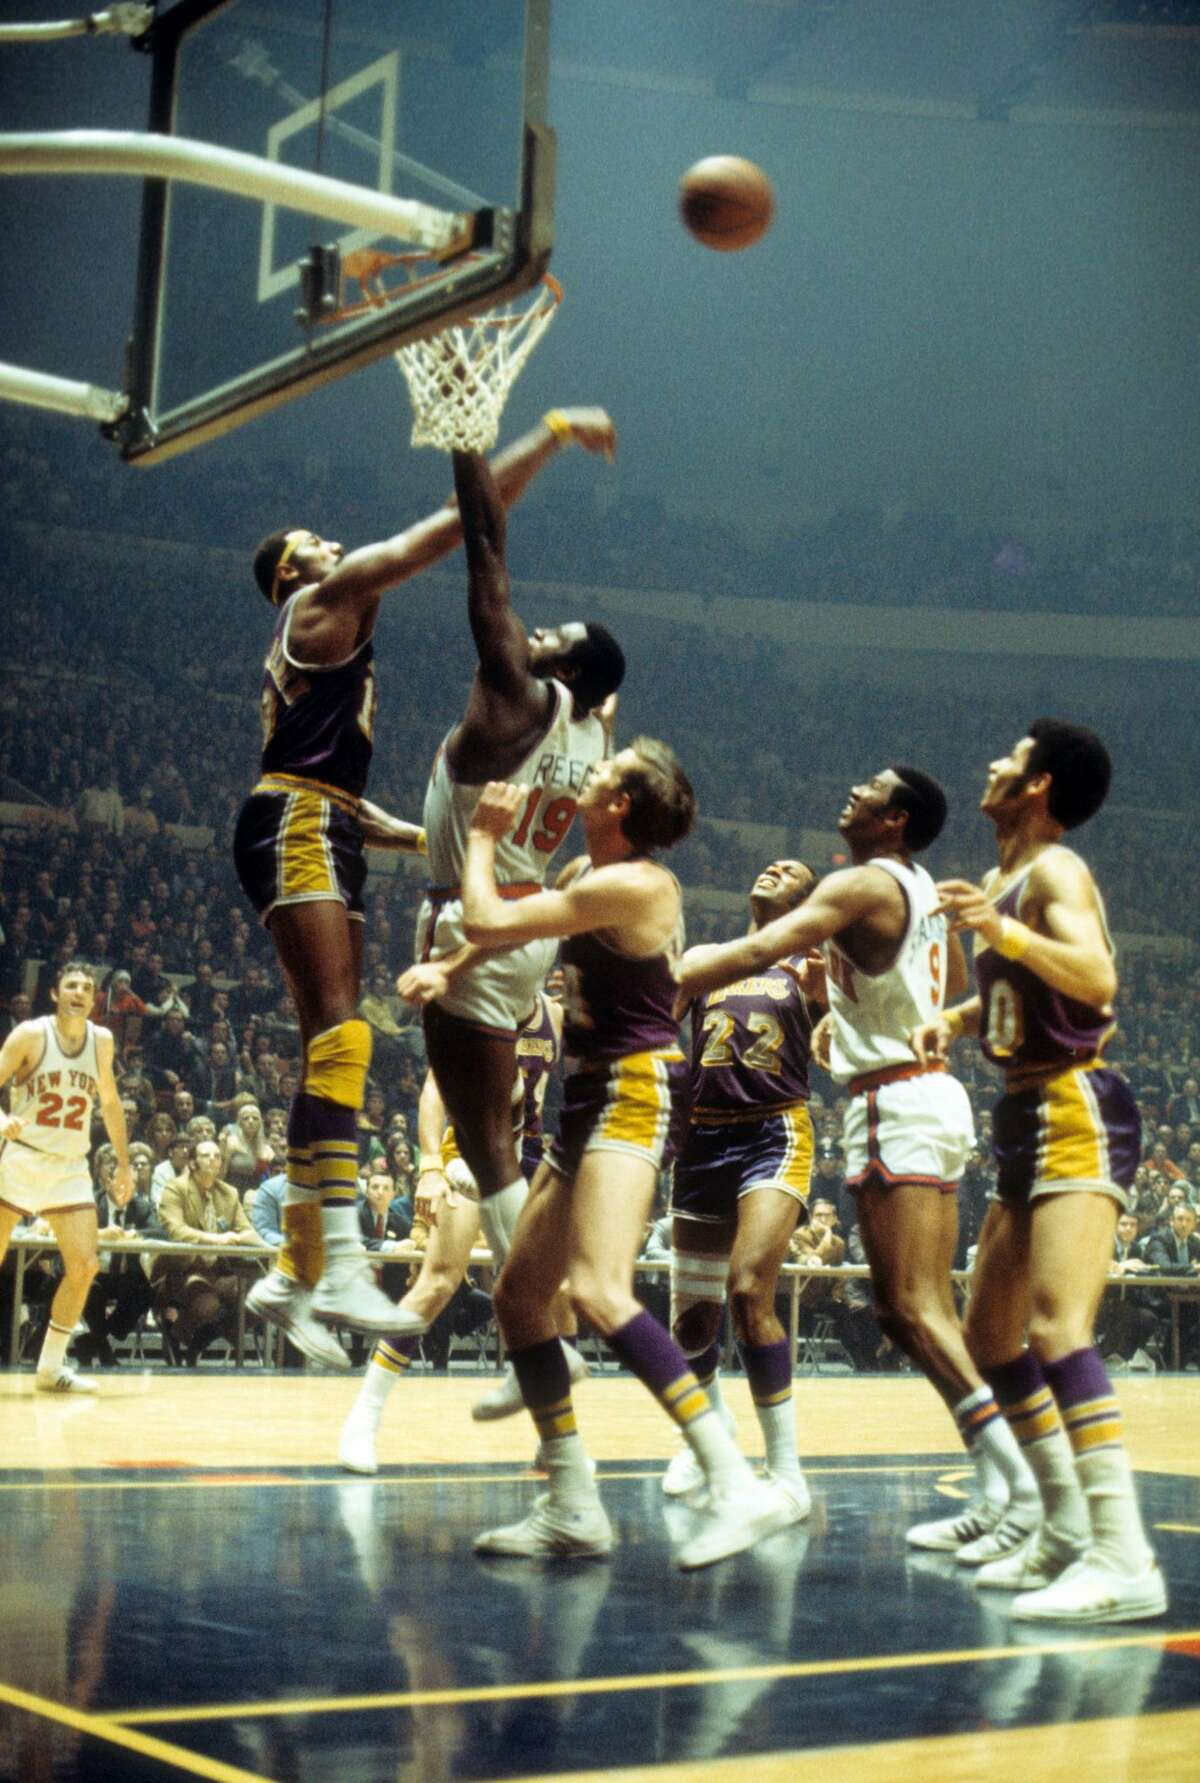 1968-1969 Los Angeles Lakers Wilt Chamberlain's trade to Los Angeles marked the first time a reigning NBA MVP was traded the following season. He teamed up with Hall-of-Famers Elgin Baylor and Jerry West in purple and gold. The team later brought back another Hall-of-Famer in Gail Goodrich in 1970, which finally led to a title in 1972.